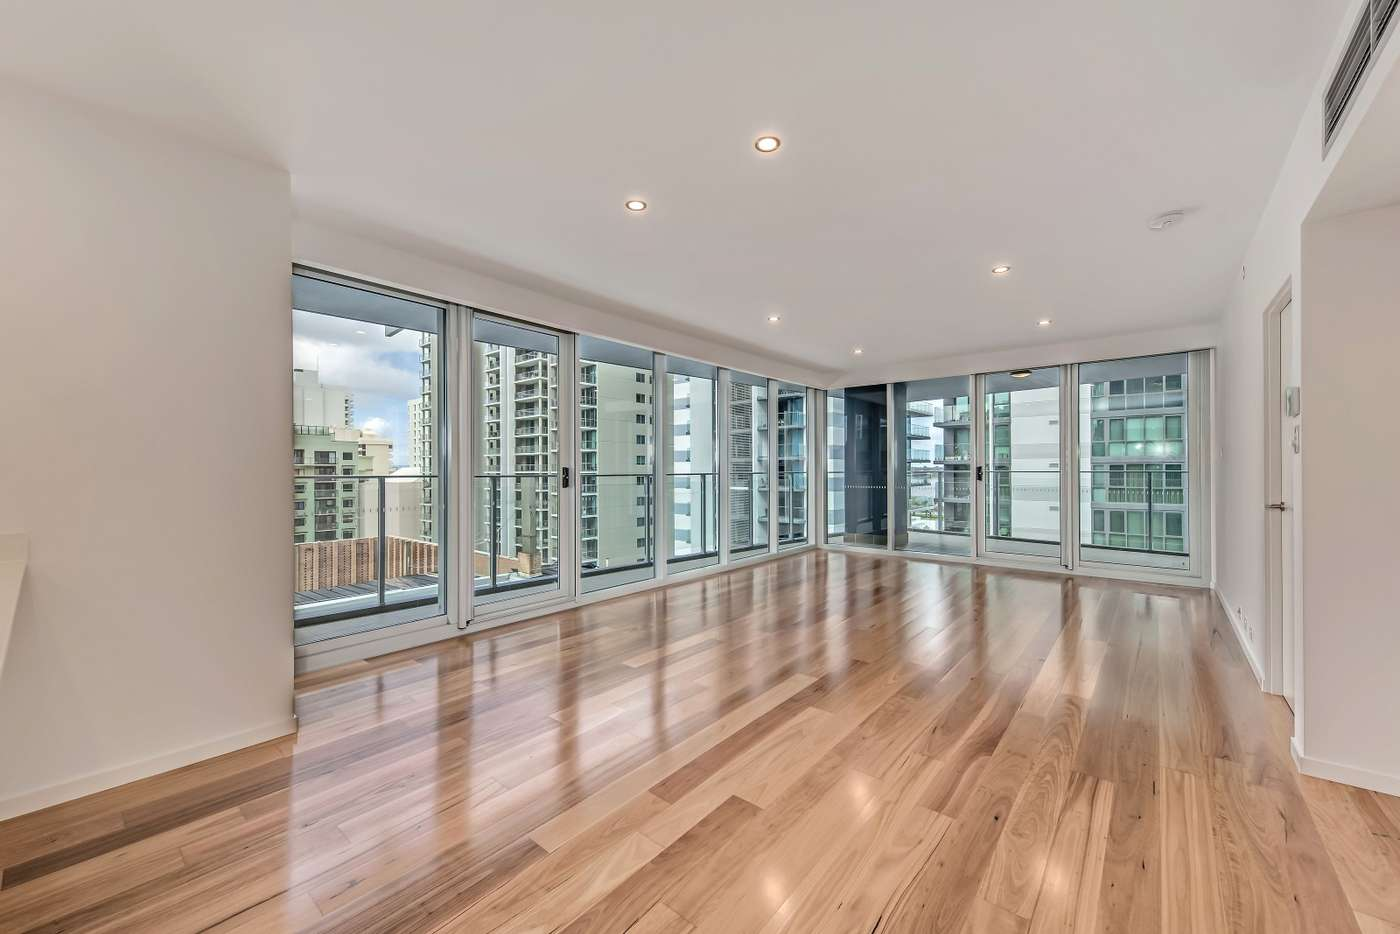 Main view of Homely apartment listing, 29/189 Adelaide Terrace, East Perth WA 6004